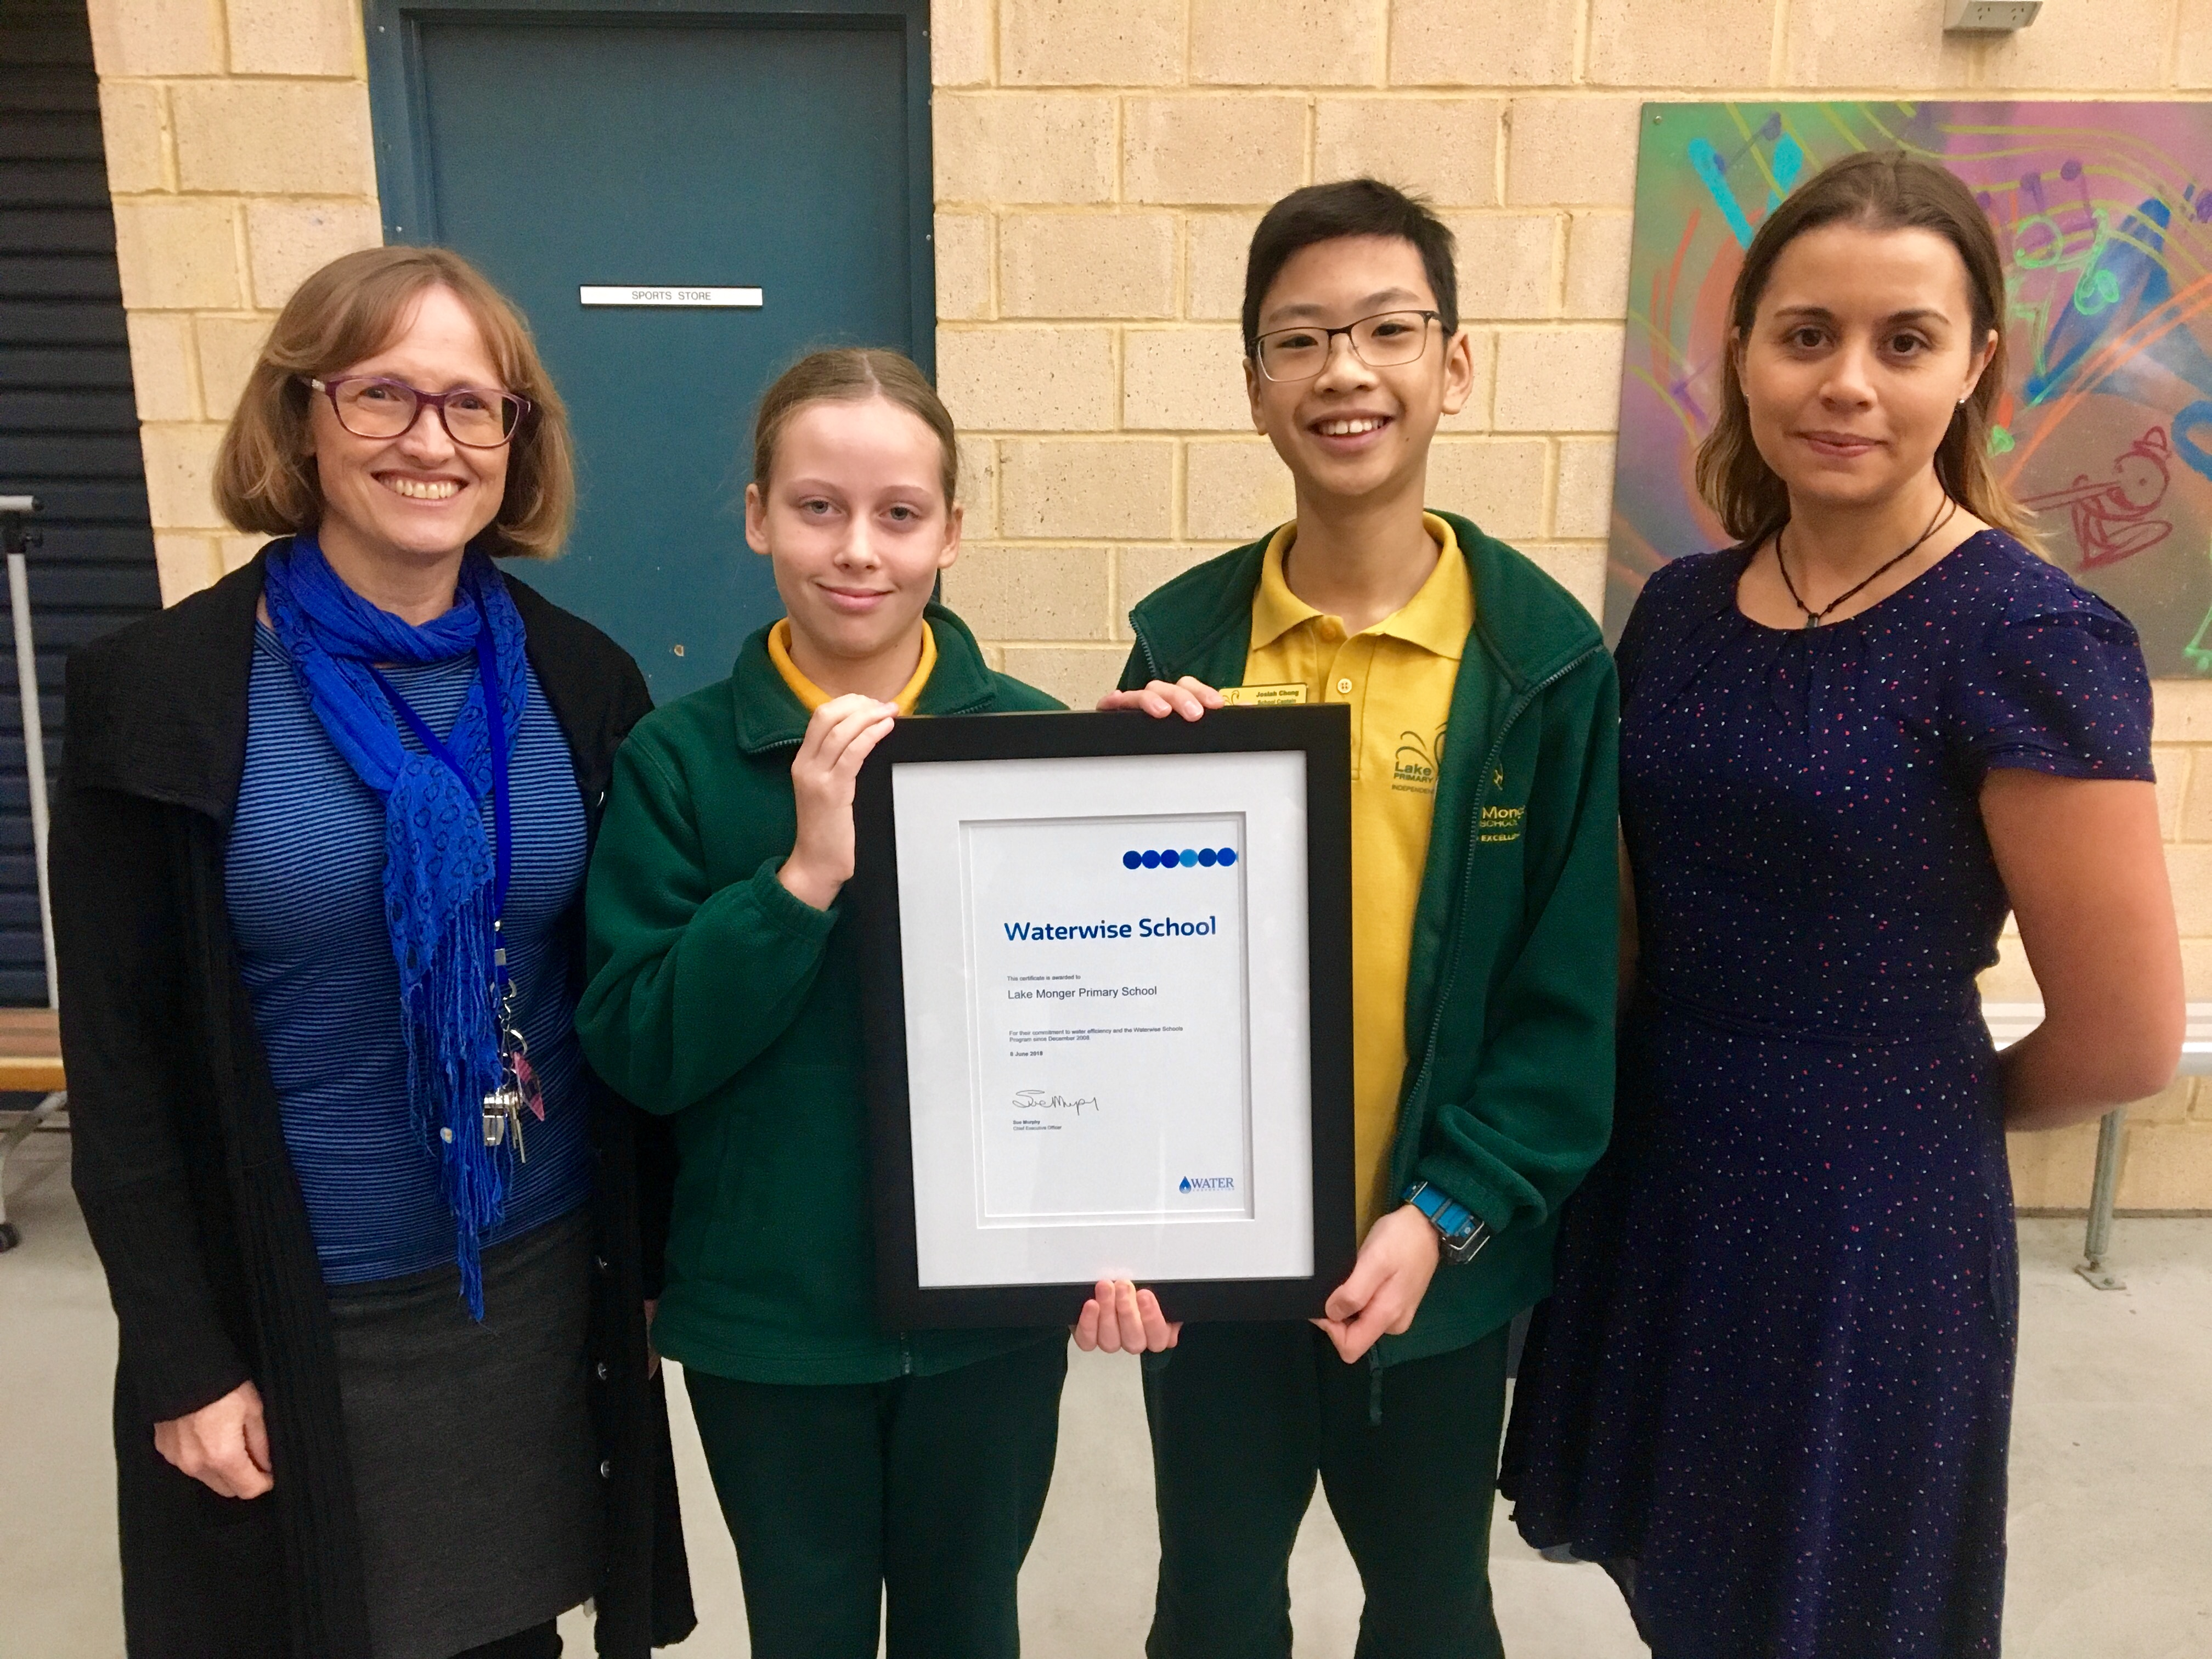 Lake Monger Primary School celebrates a decade of waterwise education